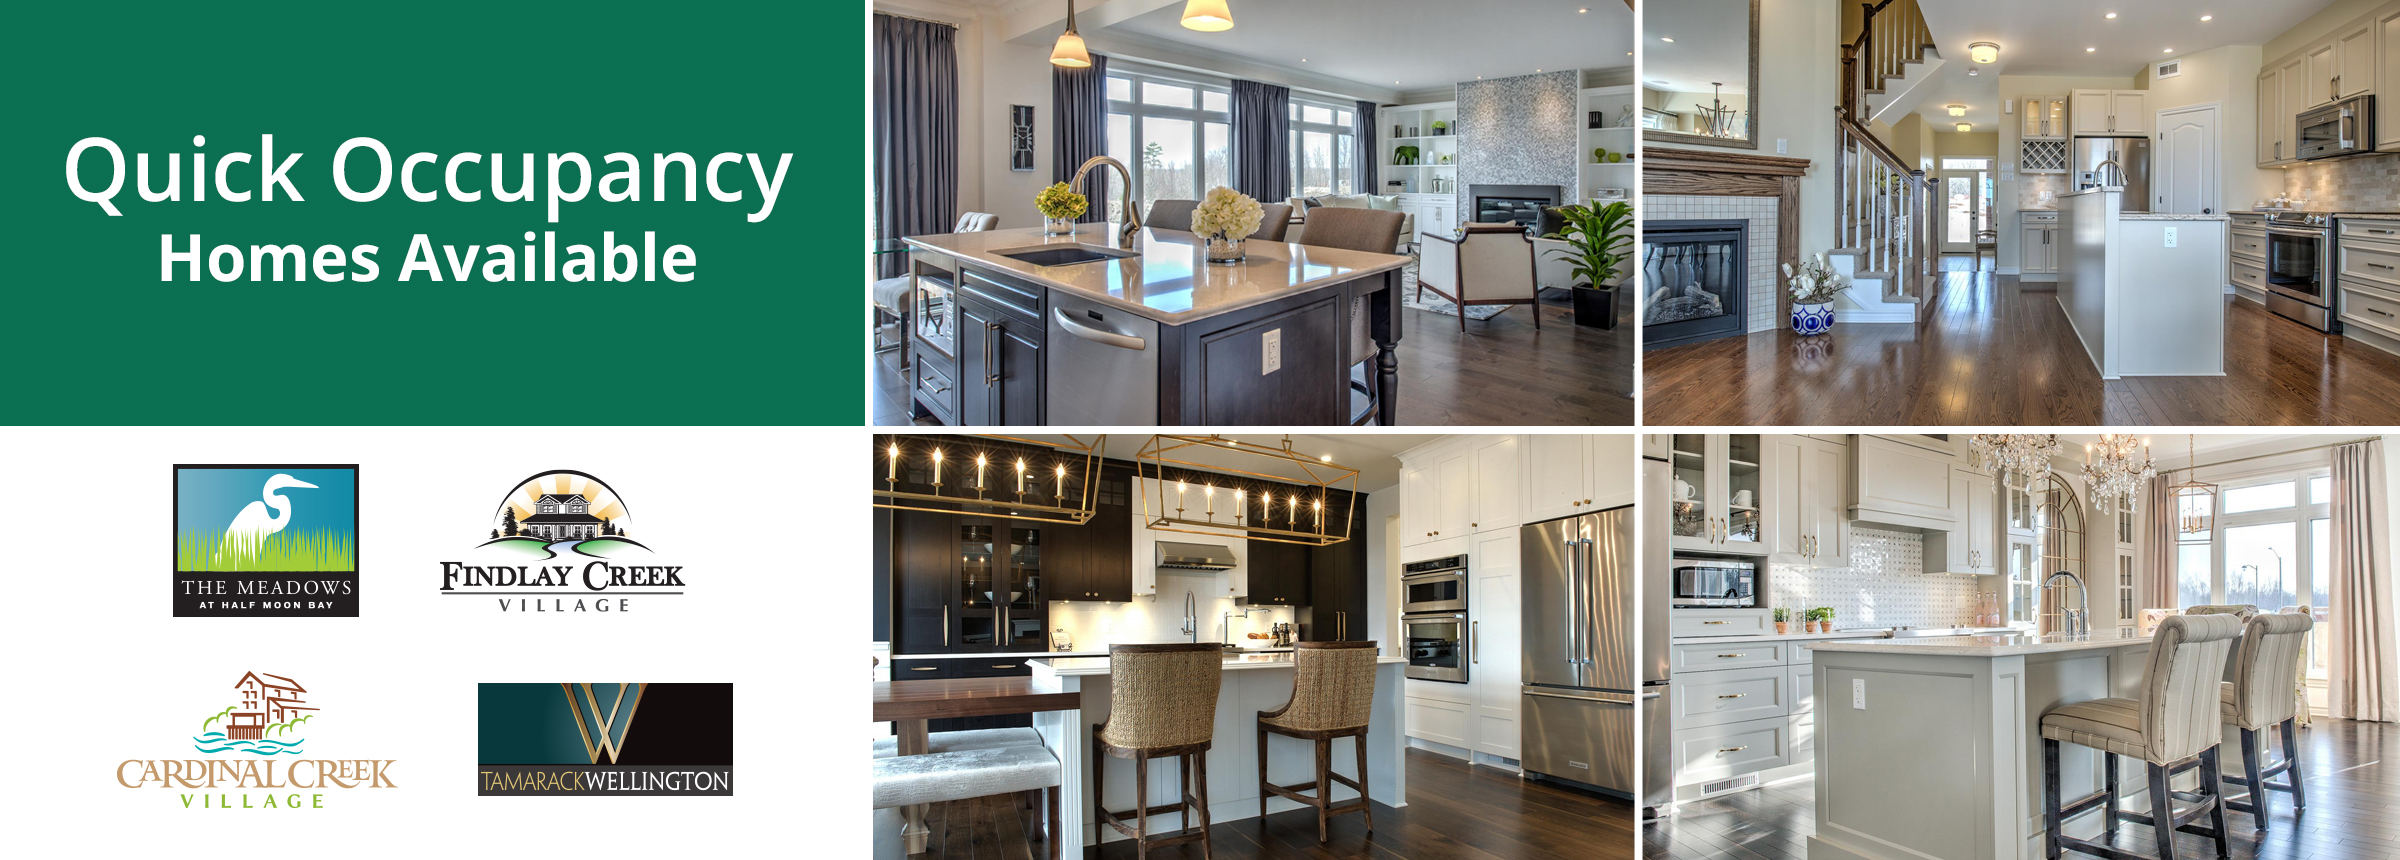 Quick Occupancy Homes Available: 4 examples of beautifully done Kitchens